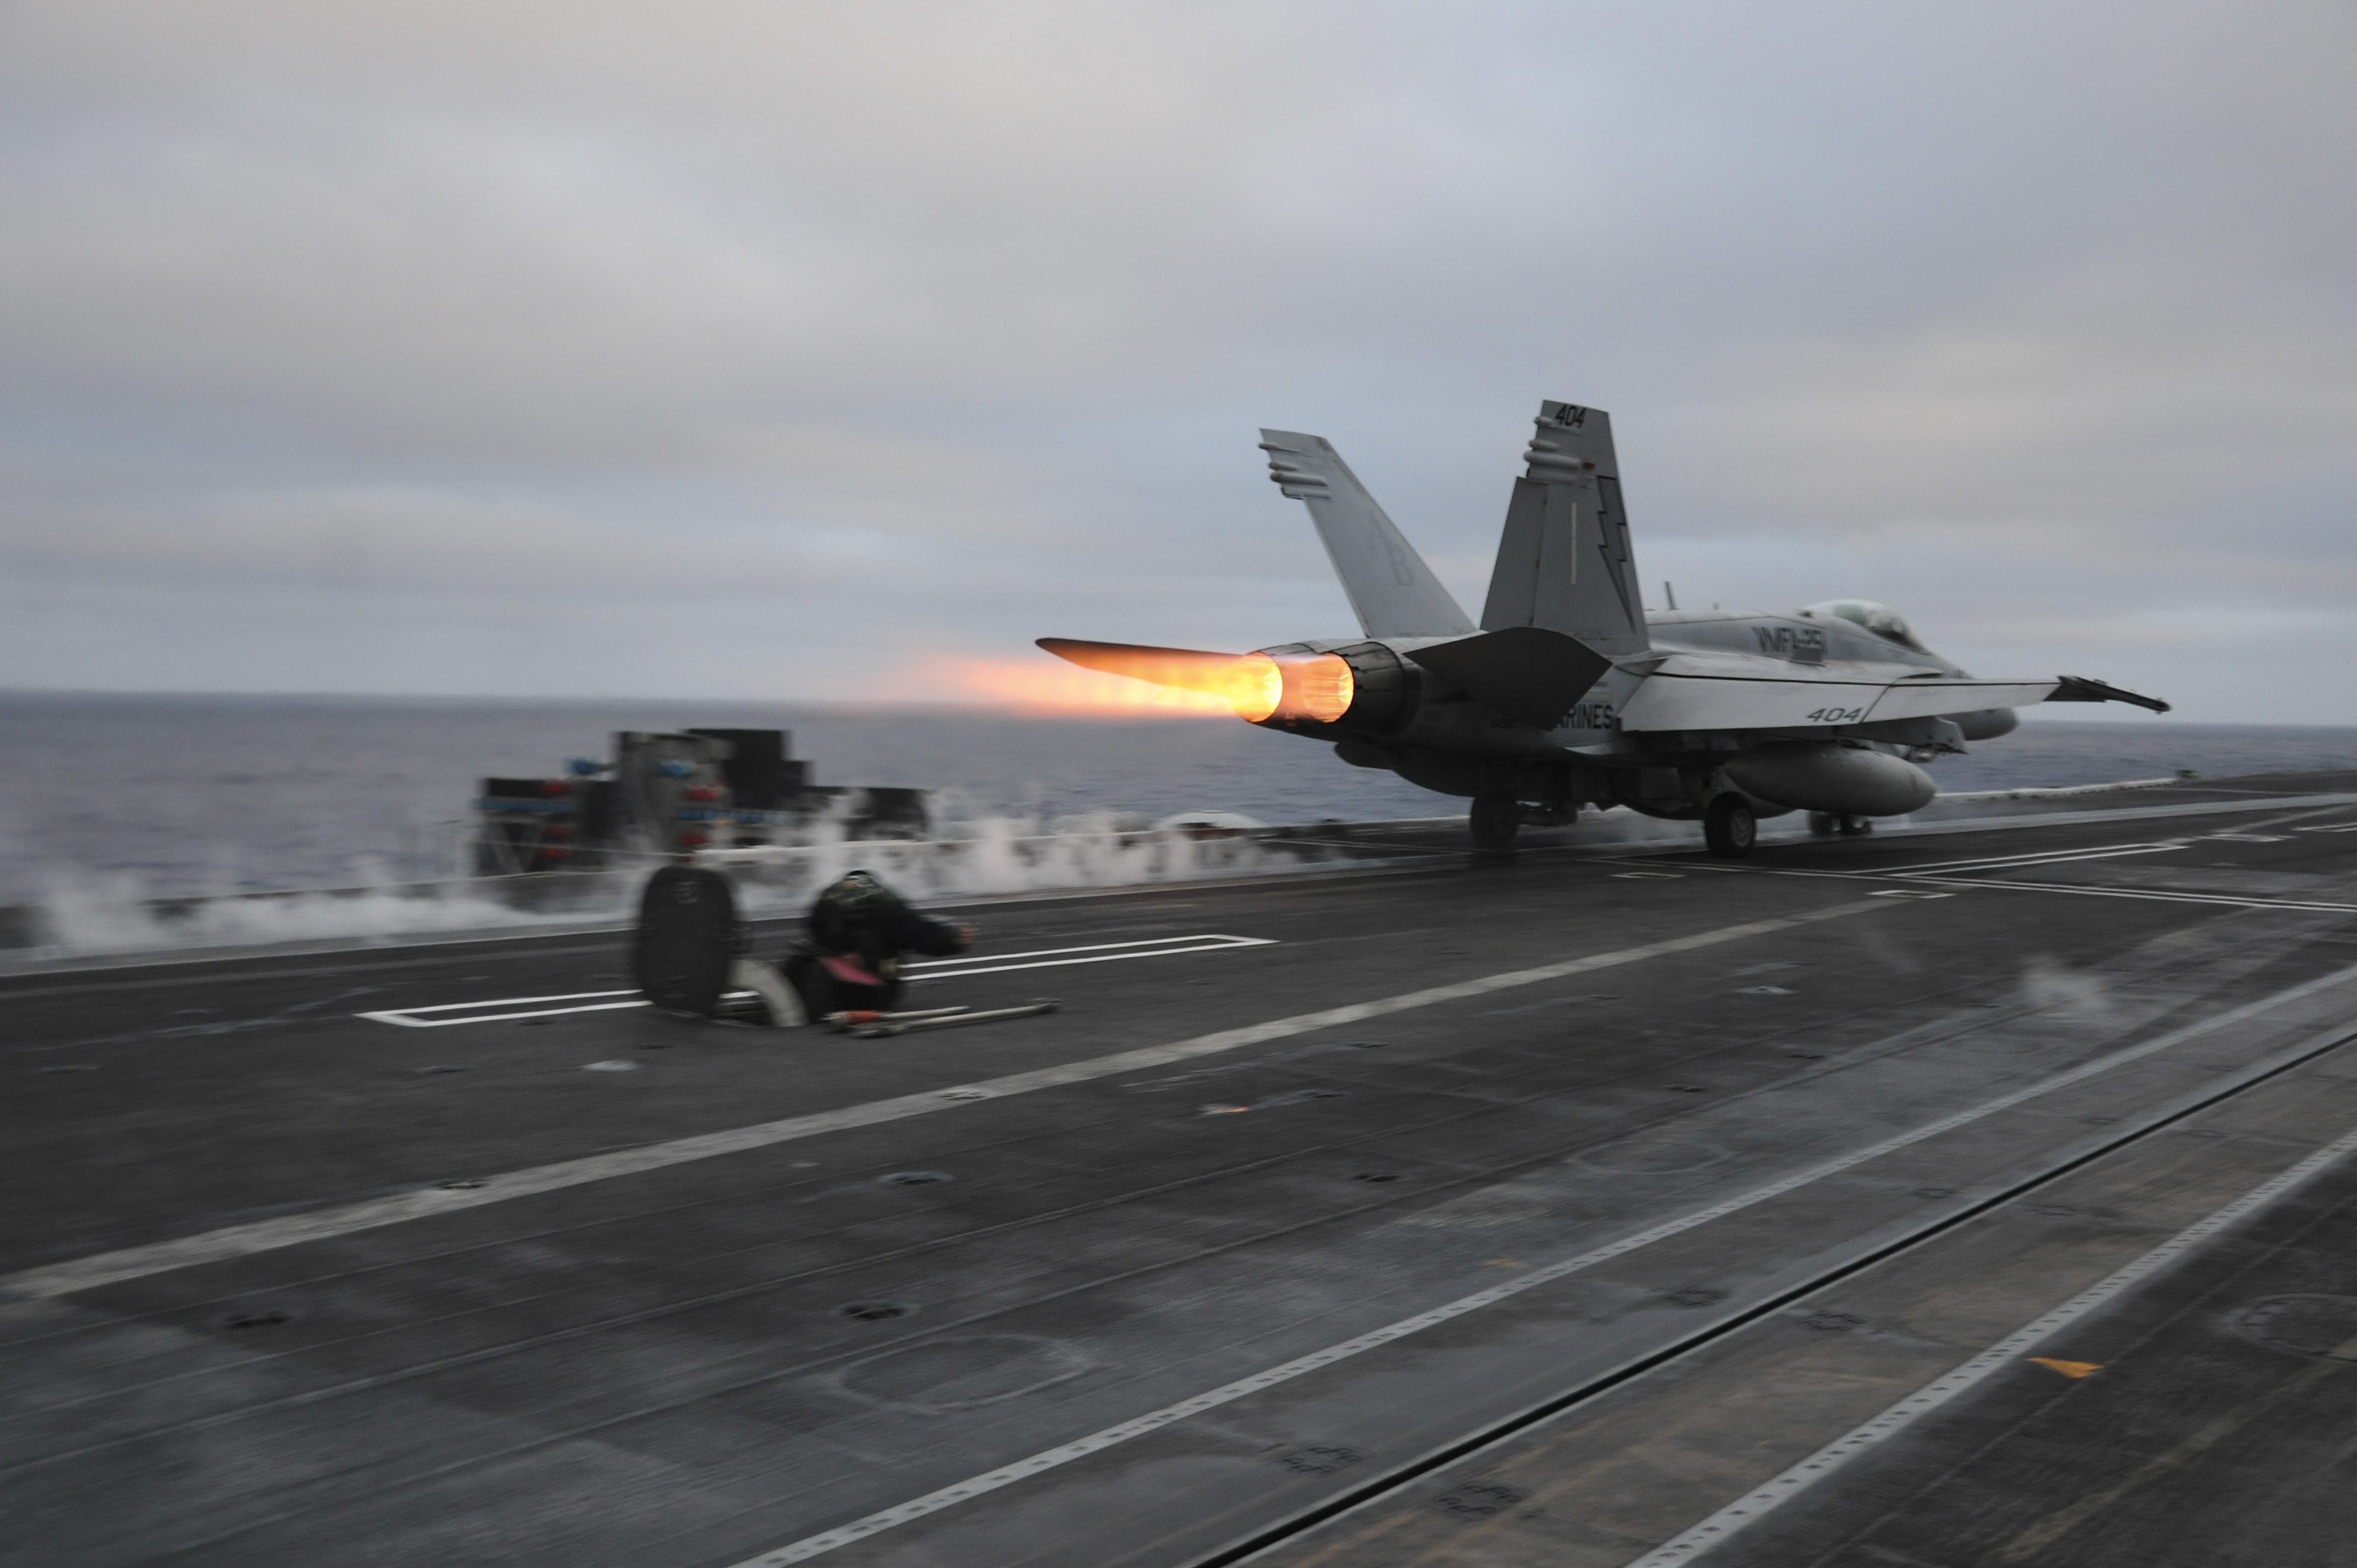 151121-N-NV908-015 PACIFIC OCEAN (Nov. 21, 2015) – An F/A-18C Hornet, assigned to the Thunderbolts of Marine Strike Fighter Squadron (VMFA) 251, launches off the flight deck of the aircraft carrier USS Theodore Roosevelt (CVN 71). The Thunderbolts, along with all Carrier Air Wing One aircraft, are on their way home after completing an eight-month deployment as part of the Theodore Roosevelt Carrier Strike Group.  Theodore Roosevelt is operating in the U.S. 3rd Fleet area of operations as part of a worldwide deployment en route to its new homeport in San Diego to complete a three-carrier homeport shift. (U.S. Navy Photo by Mass Communication Specialist Seaman Chad M. Trudeau/Released)